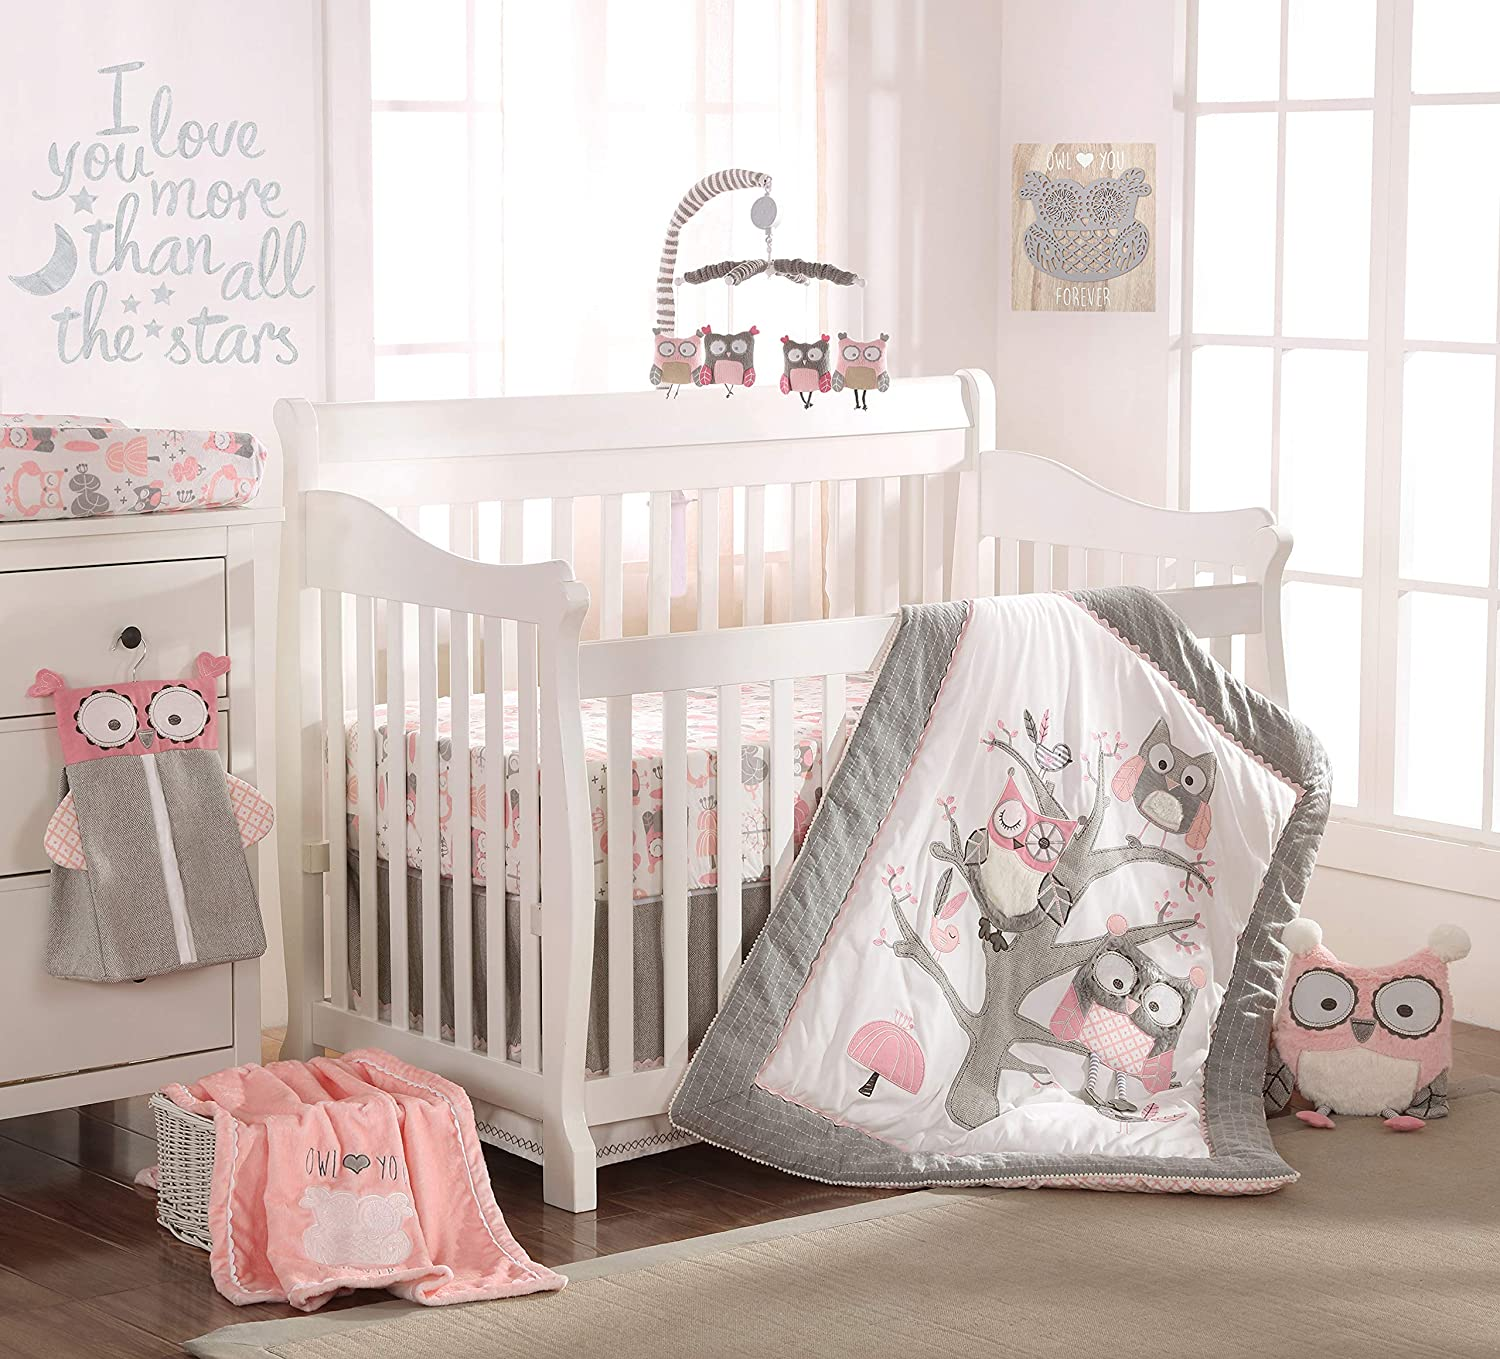 Amazon Com Levtex Baby Night Owl Pink Crib Bed Set Baby Nursery Set Pink Grey White Owls In A Tree 5 Piece Set Includes Quilt Fitted Sheet